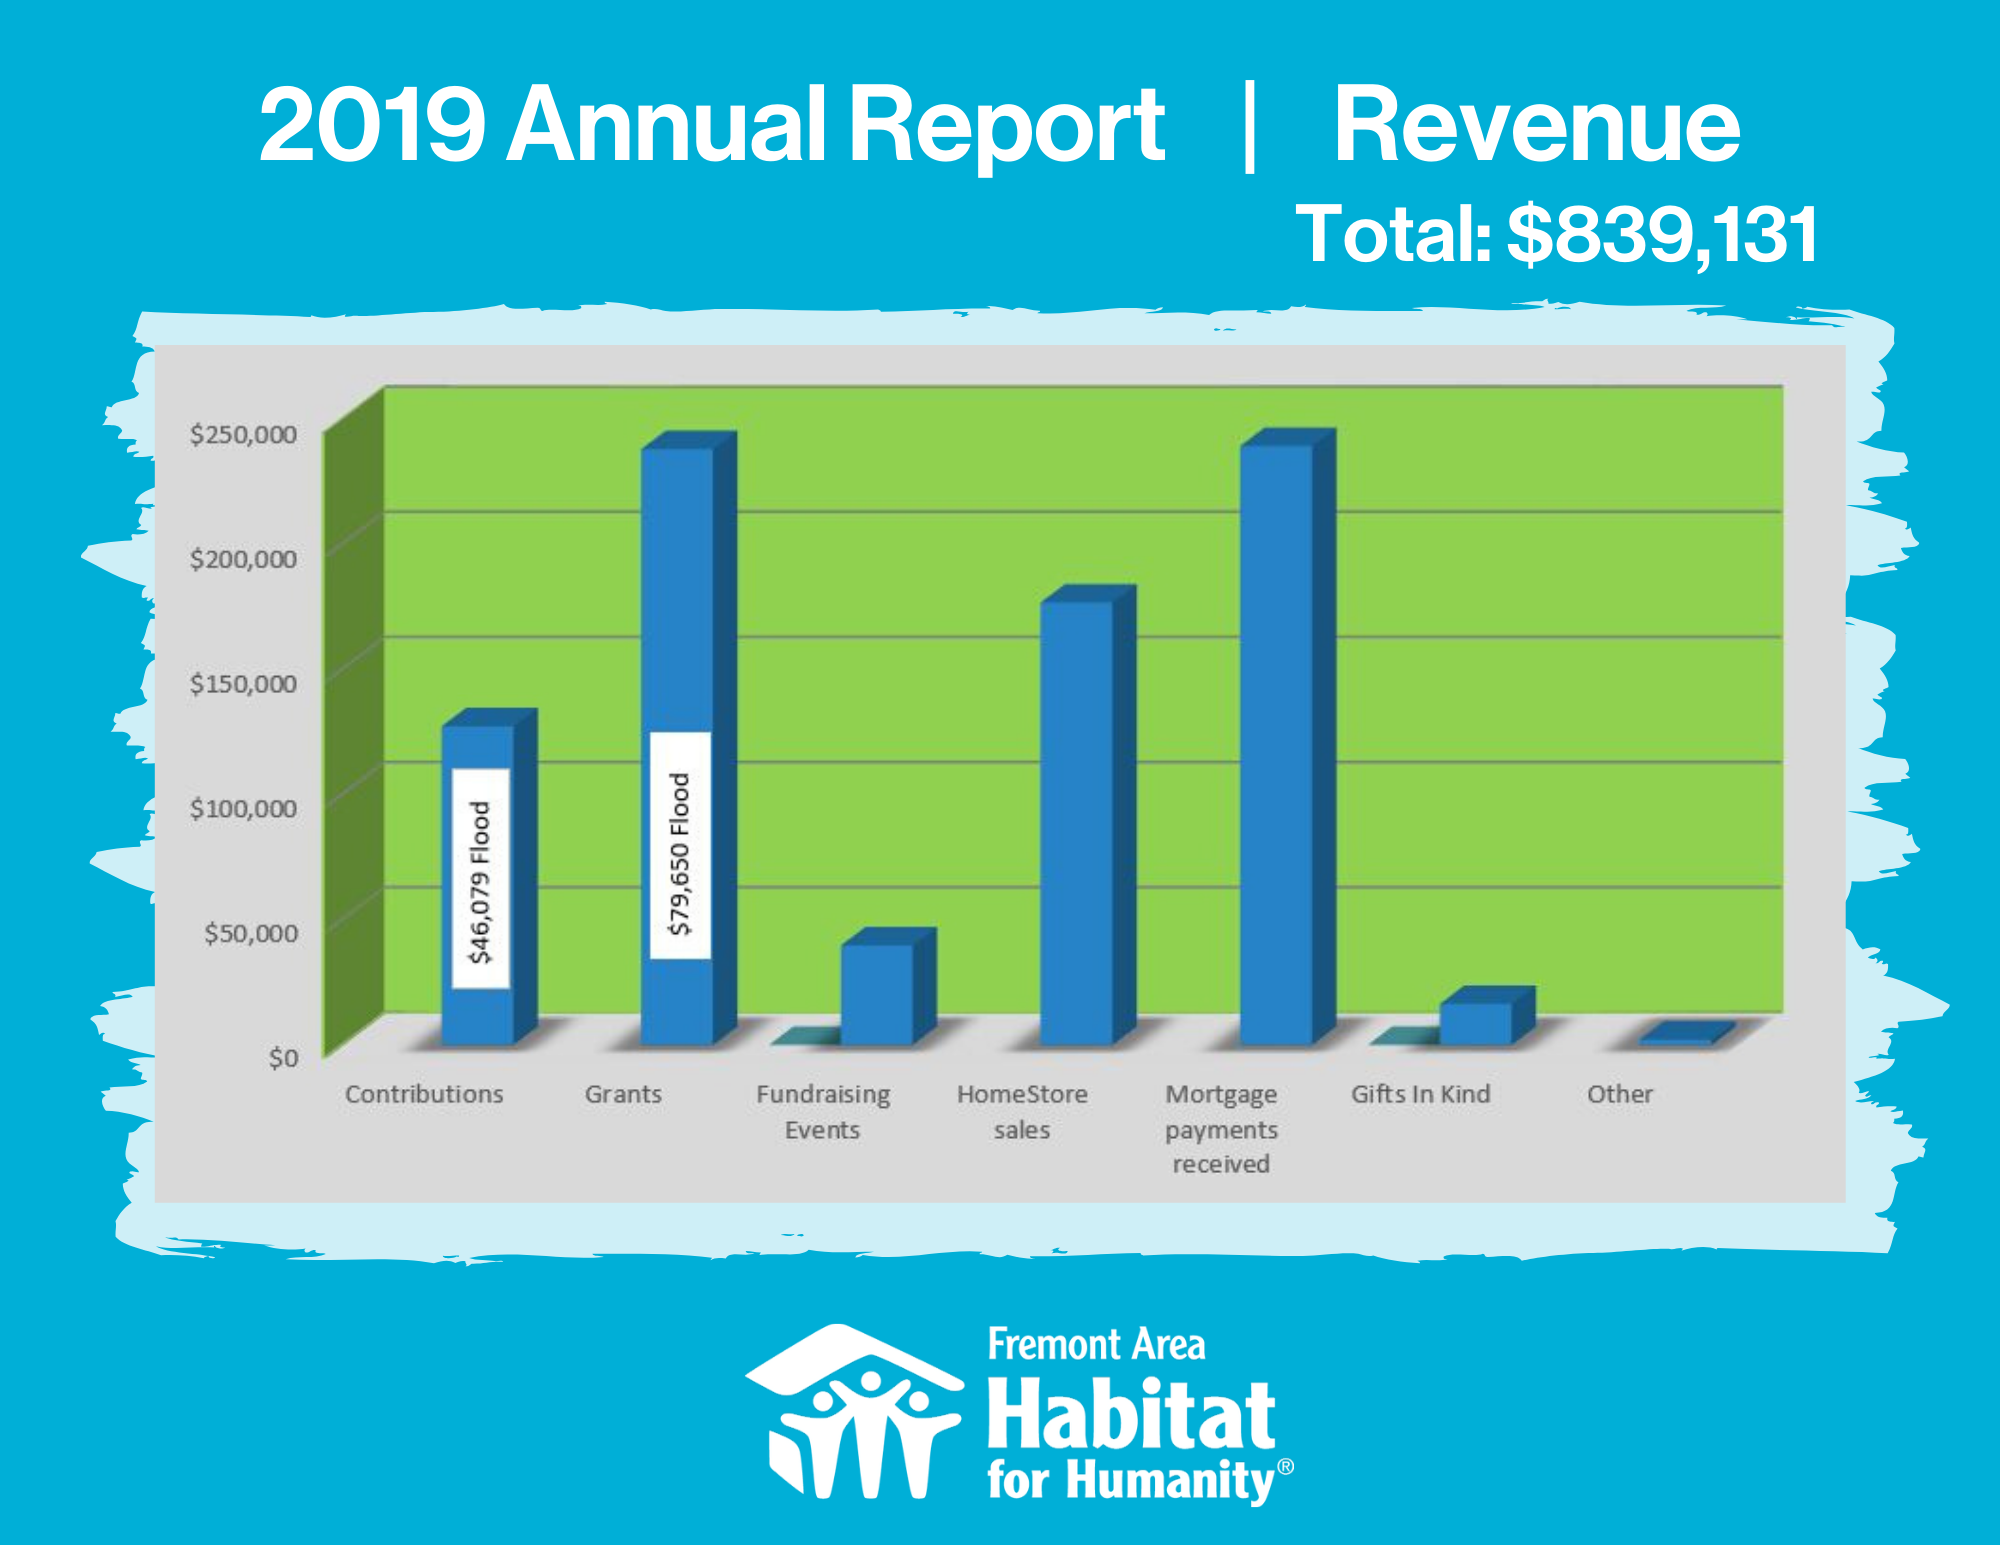 2019 Annual Report - Income